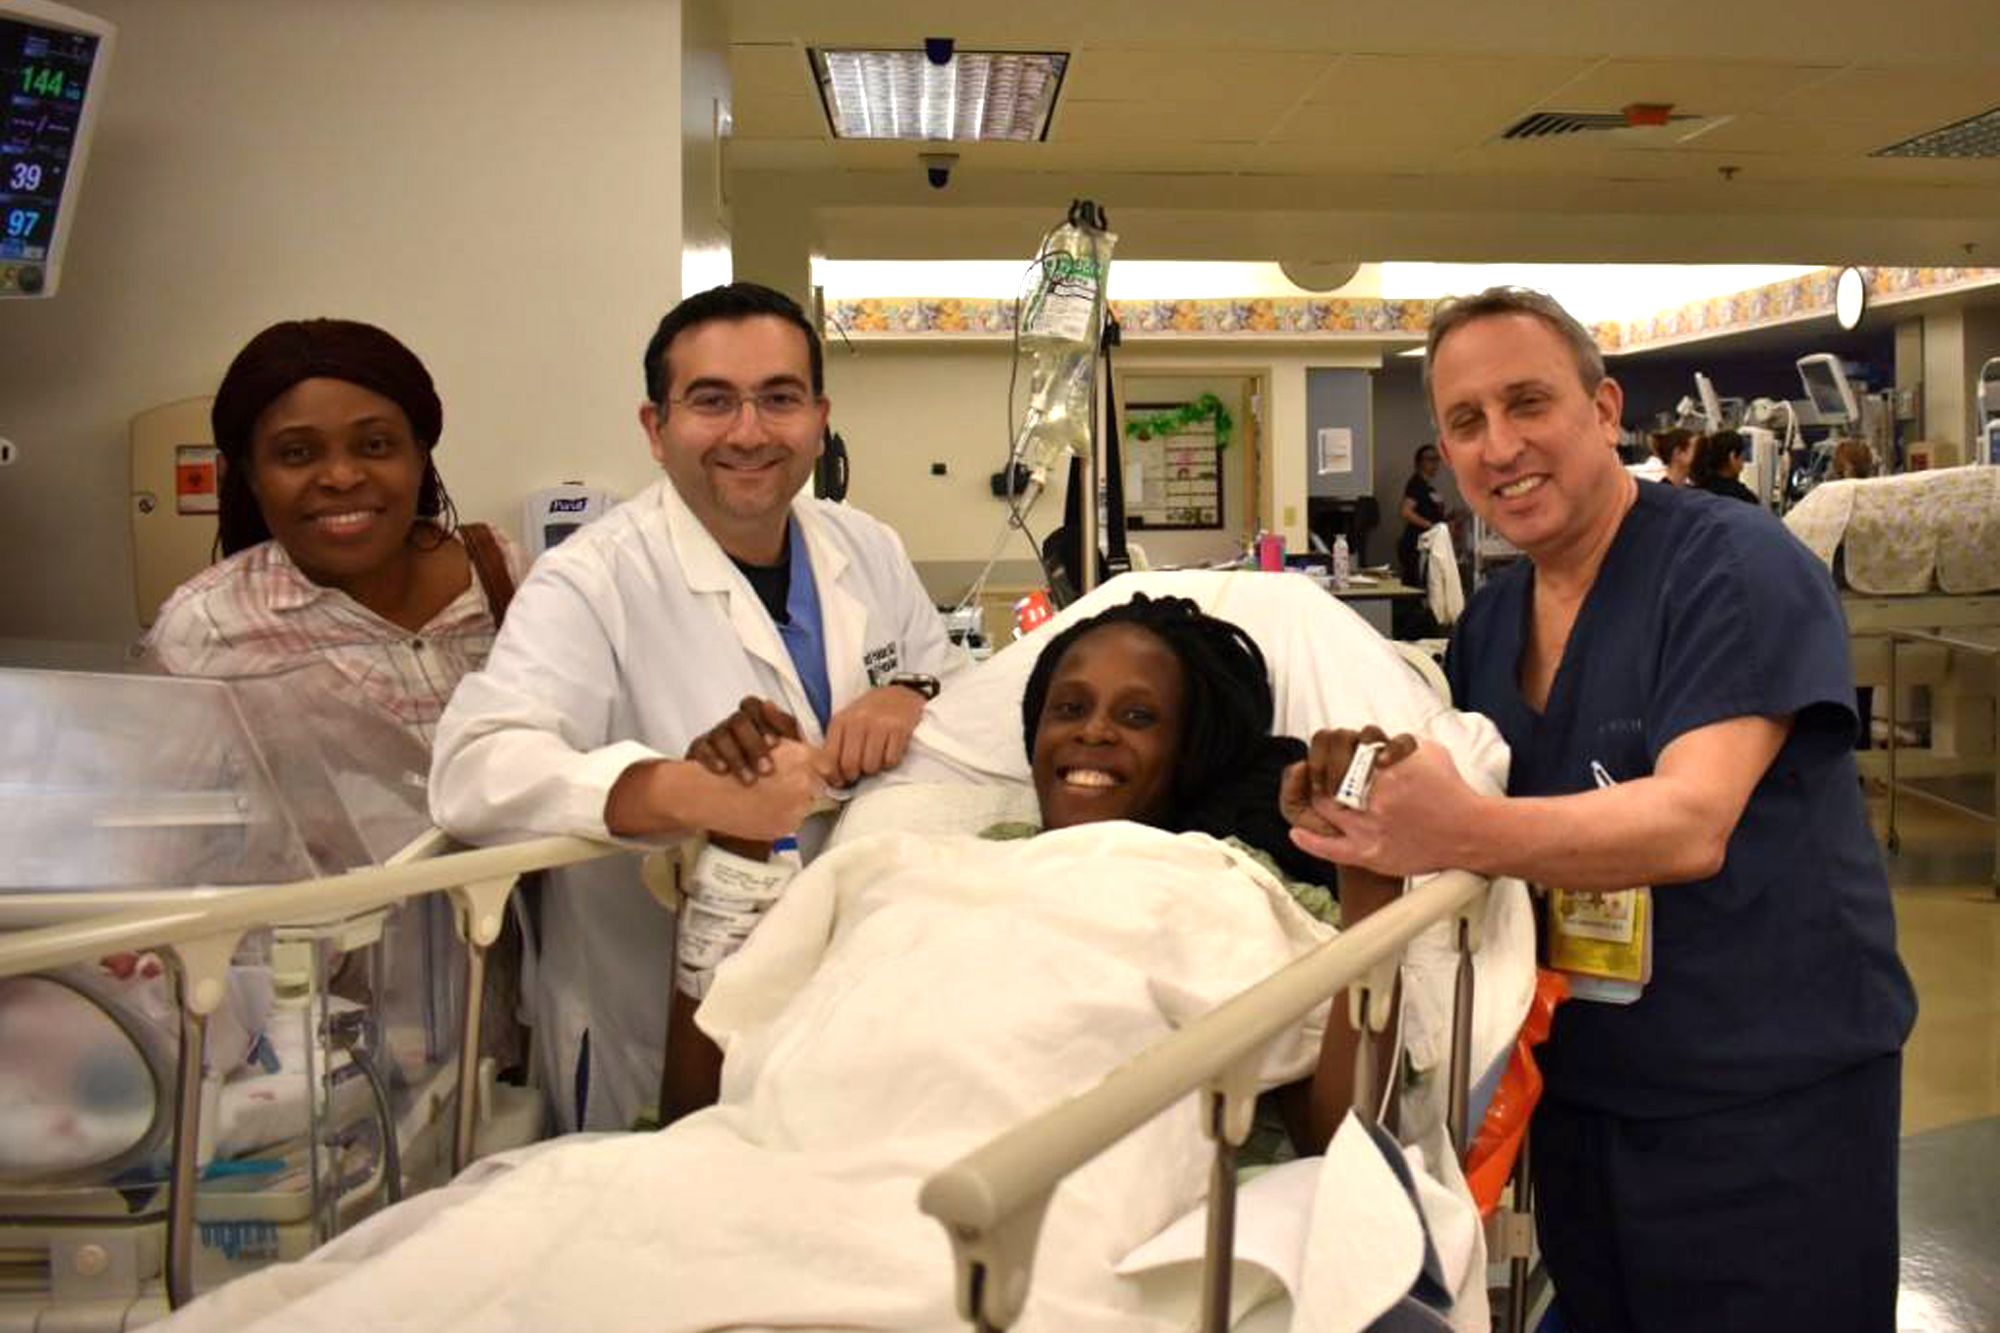 Houston Woman Gives Birth to 3 Sets of Twins in 9 Minutes: 'This Is Miraculous!'